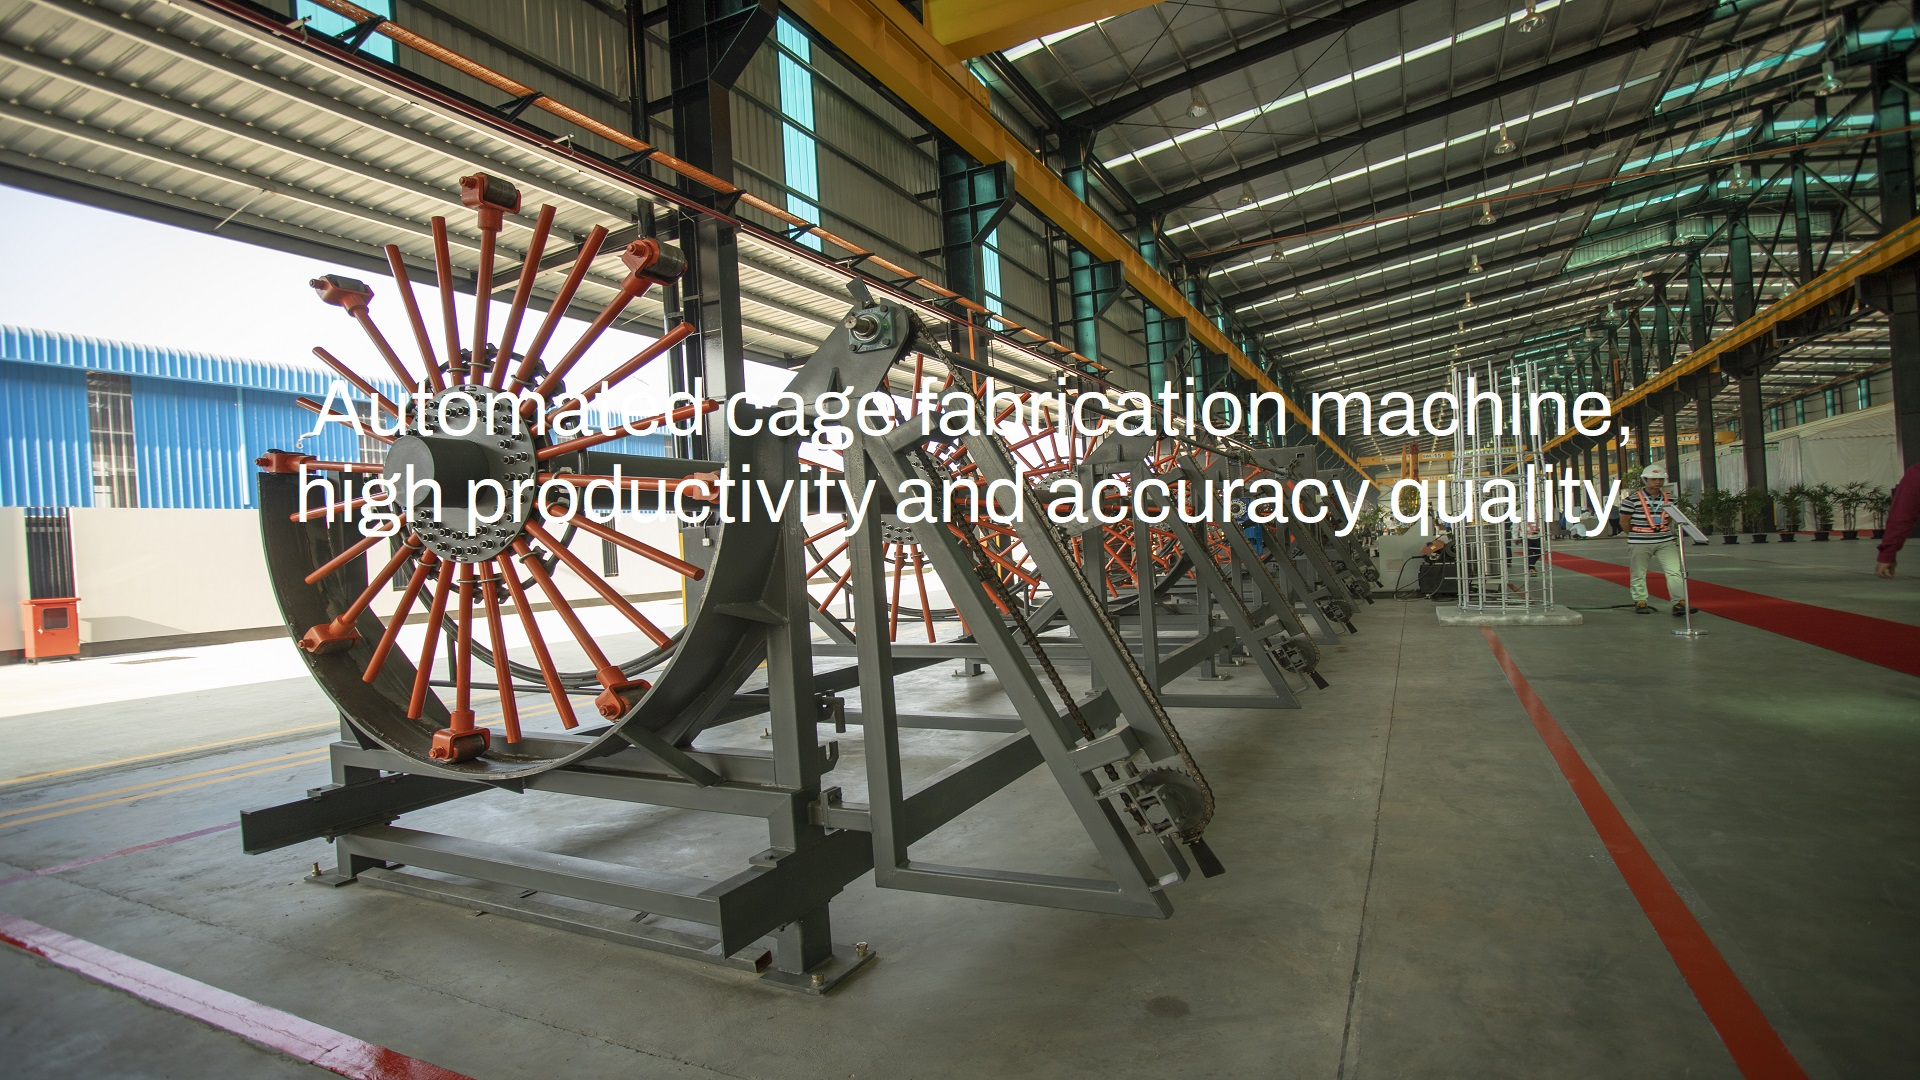 Automated cage fabrication machine, high productivity and accuracy quality